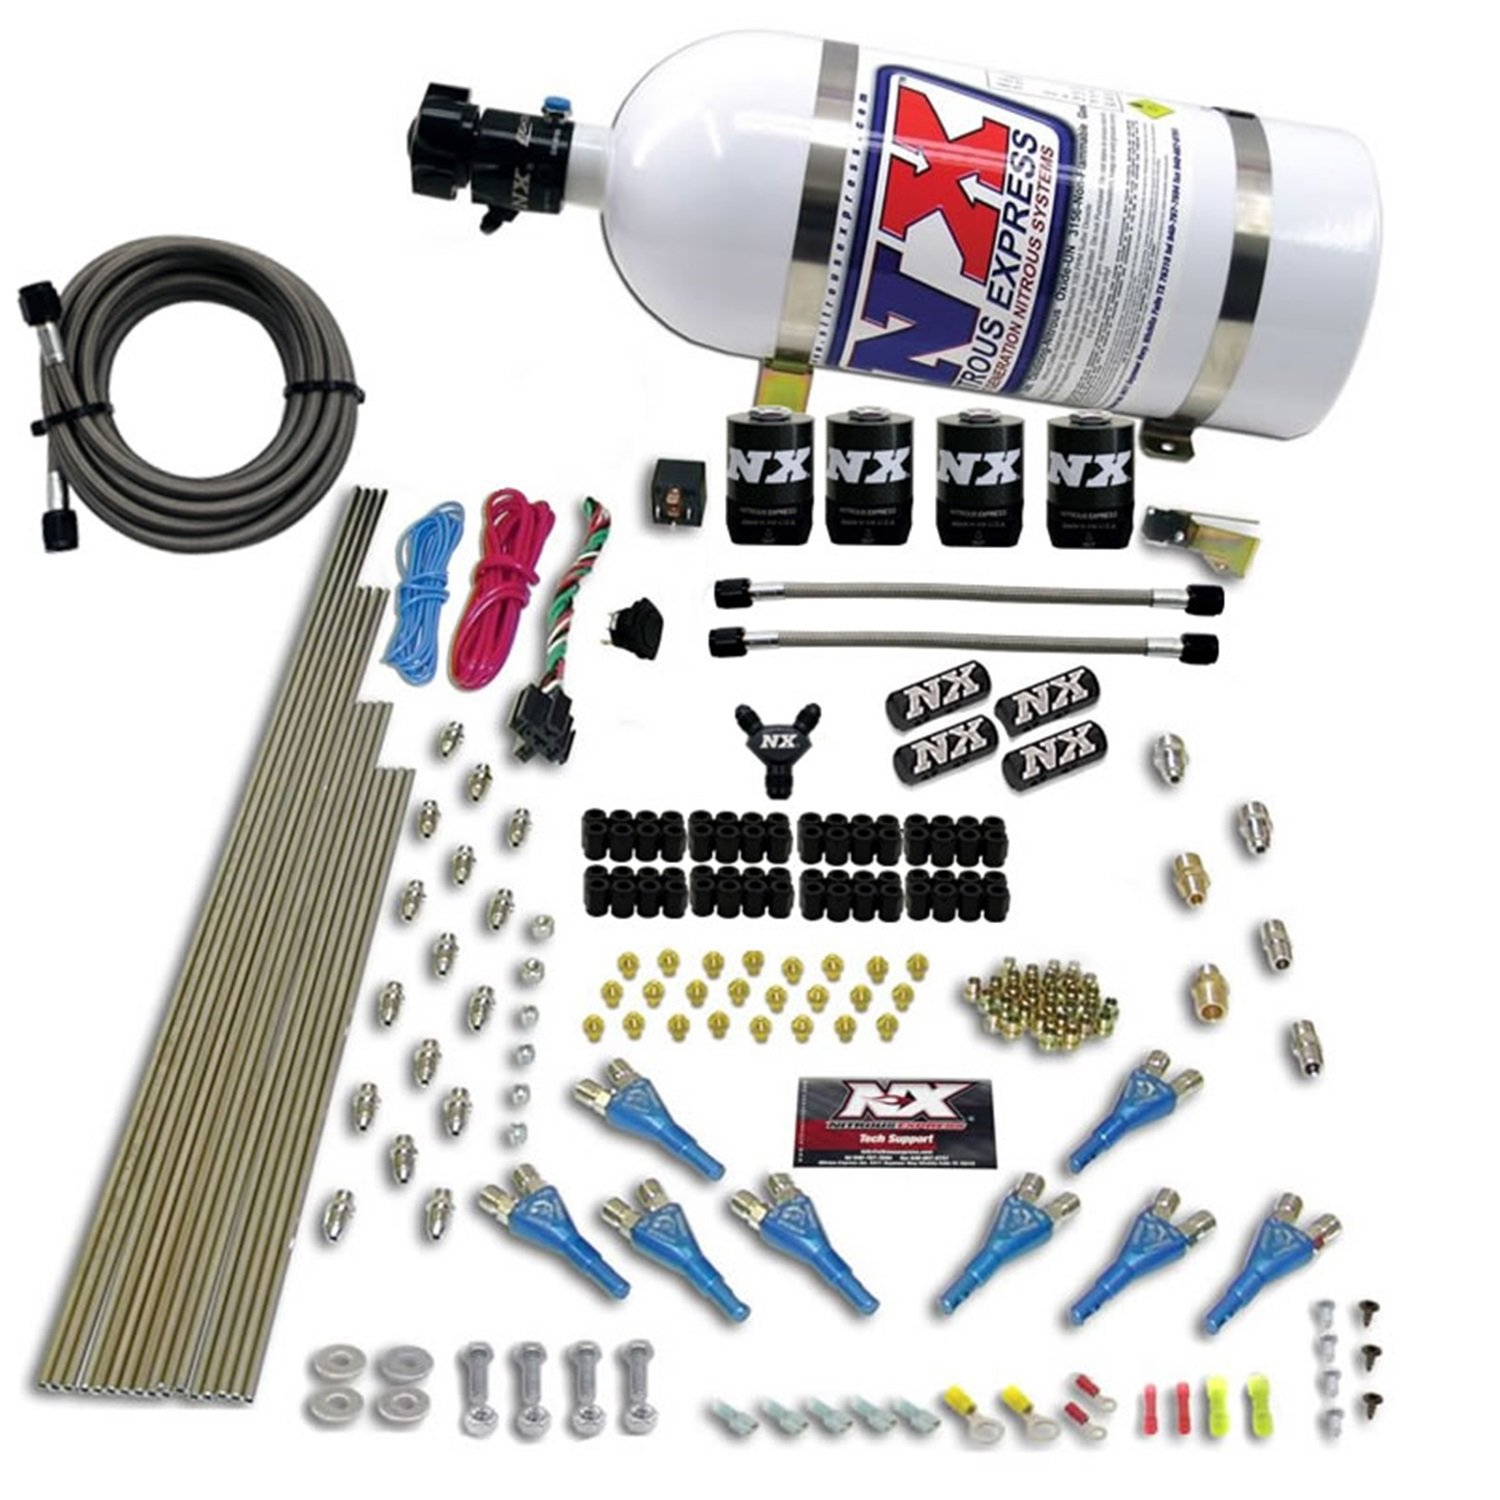 Nitrous Express 90006-10 200-600 HP 8-Cylinder Gasoline Shark Direct Port System with 4 Solenoids and 10 lbs. Bottle